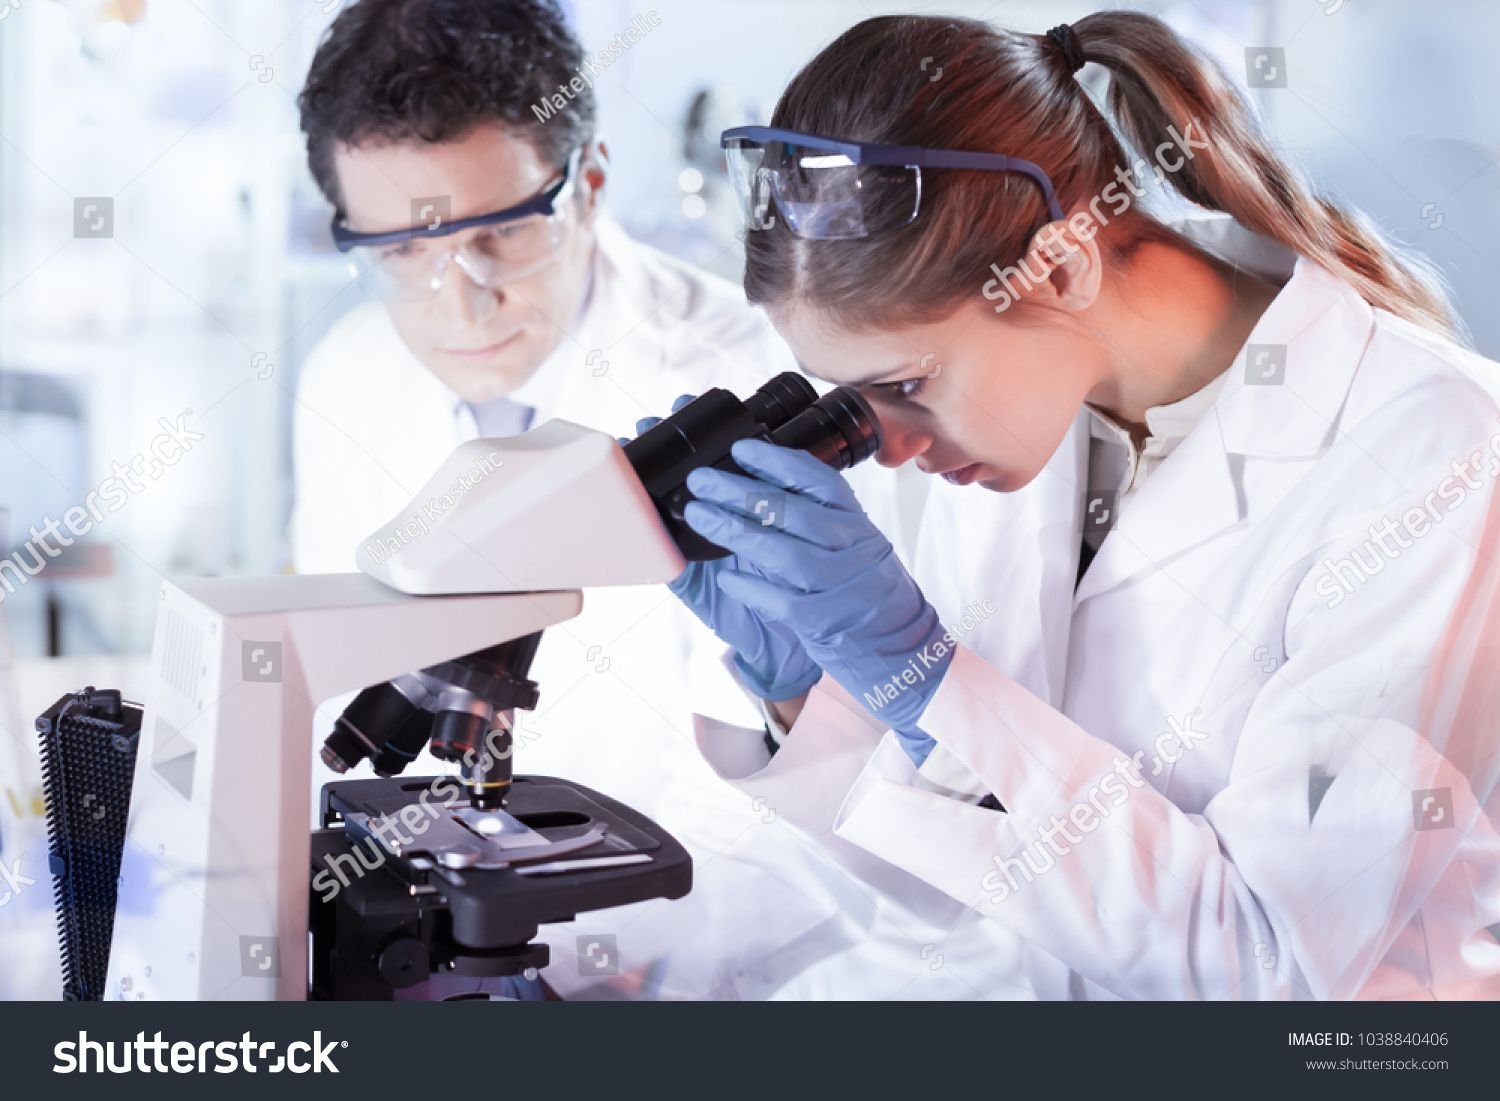 Life scientists researching in laboratory. Attractive